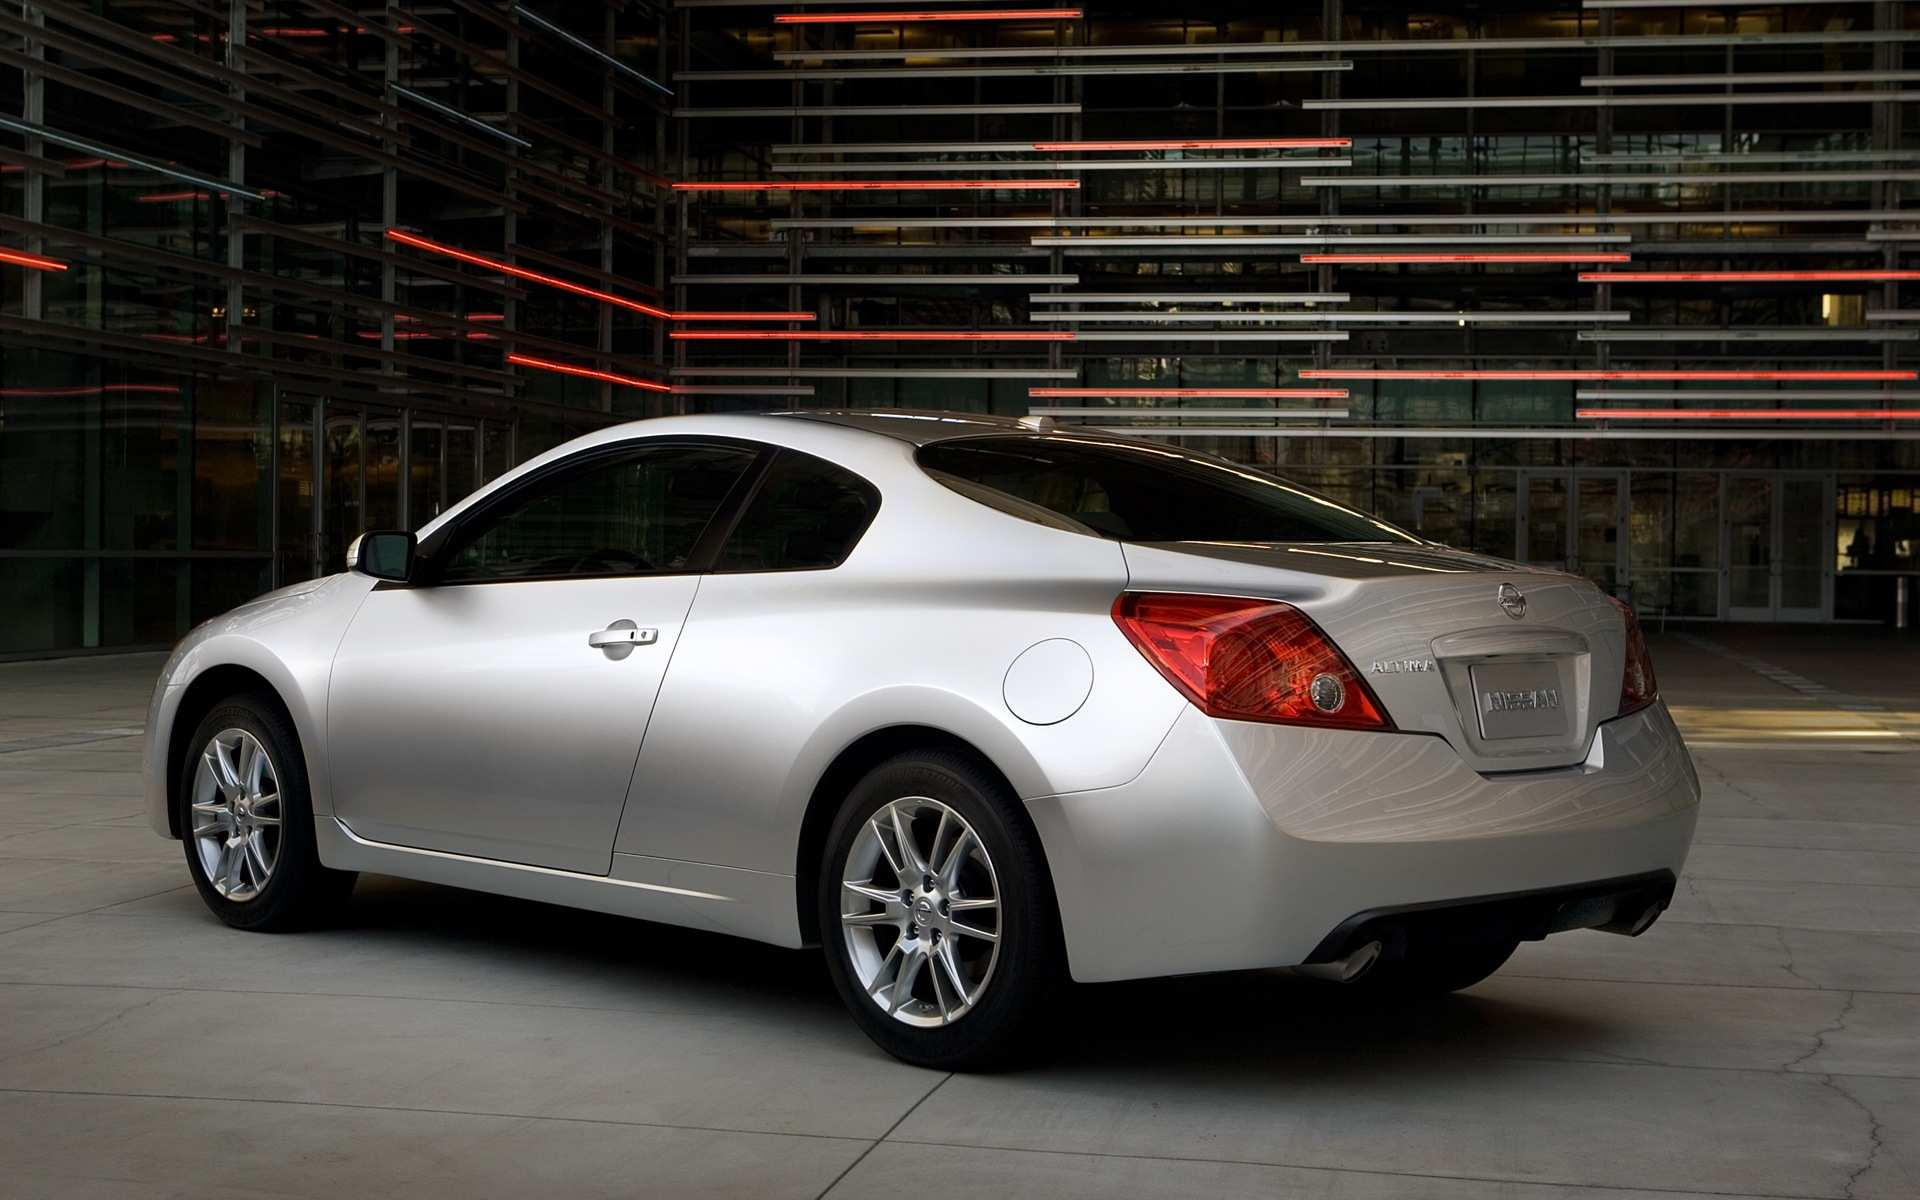 47 The 2012 Nissan Altima Coupe Rumors by 2012 Nissan Altima Coupe